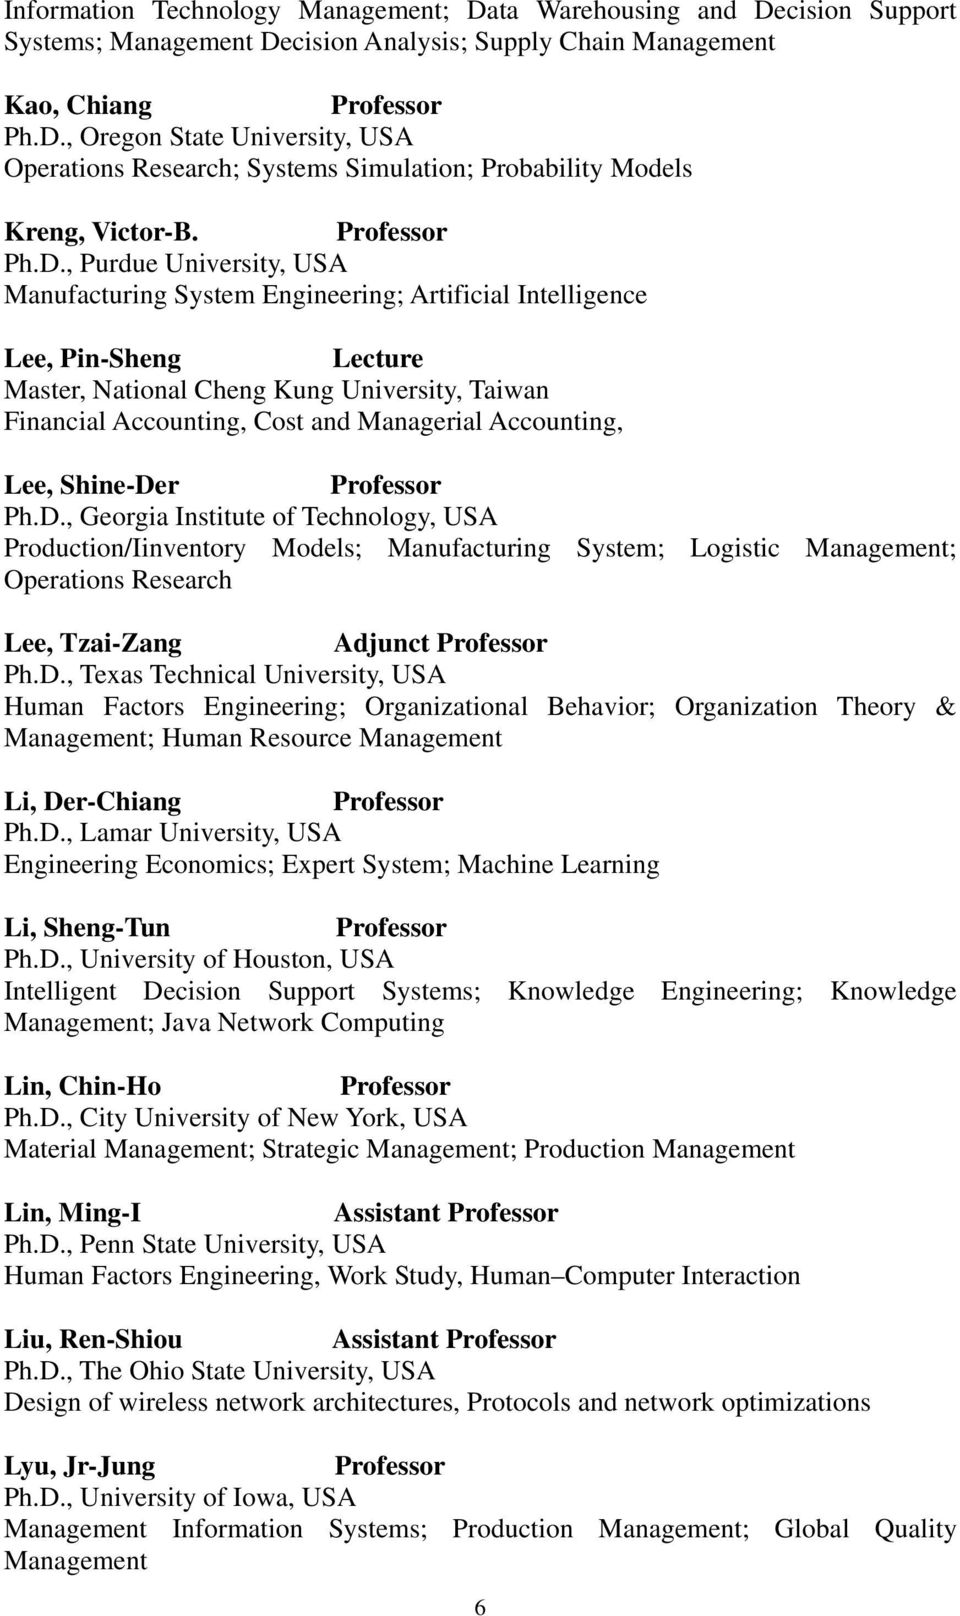 Accounting, Lee, Shine-Der Ph.D., Georgia Institute of Technology, USA Production/Iinventory Models; Manufacturing System; Logistic Management; Operations Research Lee, Tzai-Zang Adjunct Ph.D., Texas Technical University, USA Human Factors Engineering; Organizational Behavior; Organization Theory & Management; Human Resource Management Li, Der-Chiang Ph.